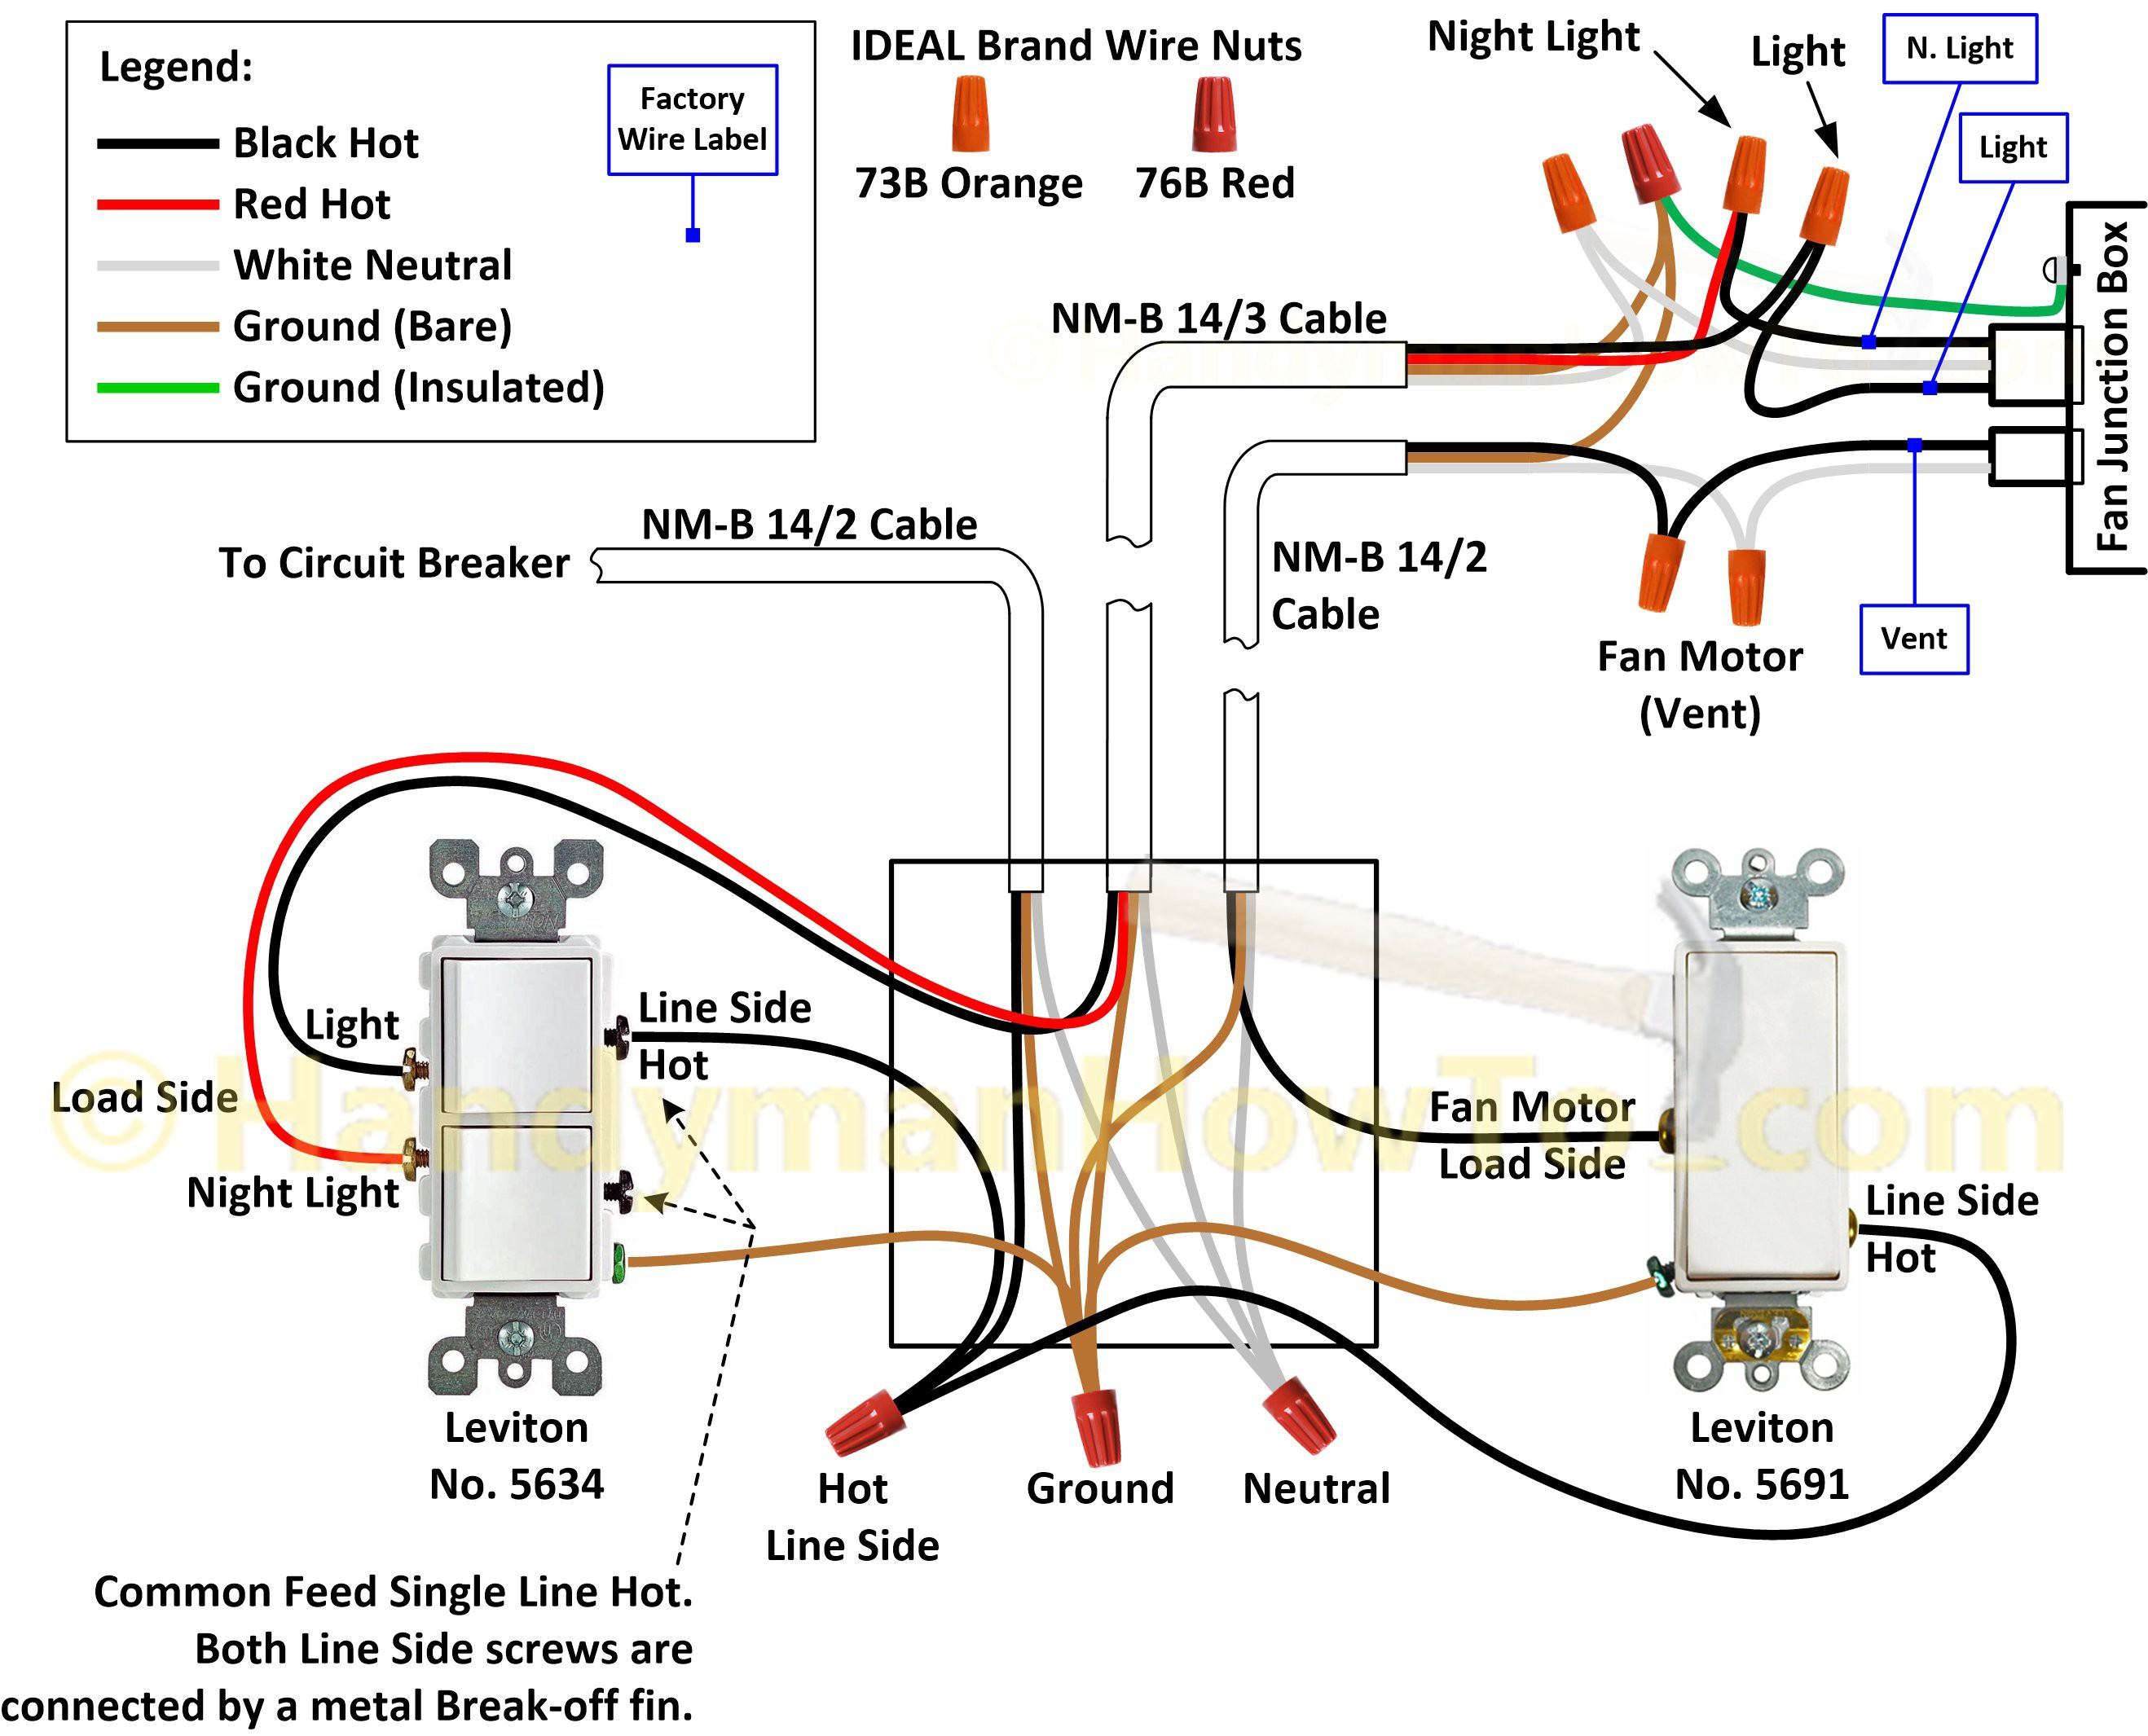 single gfci wiring diagram Download-Awesome Gfci Wiring Diagram 19-n